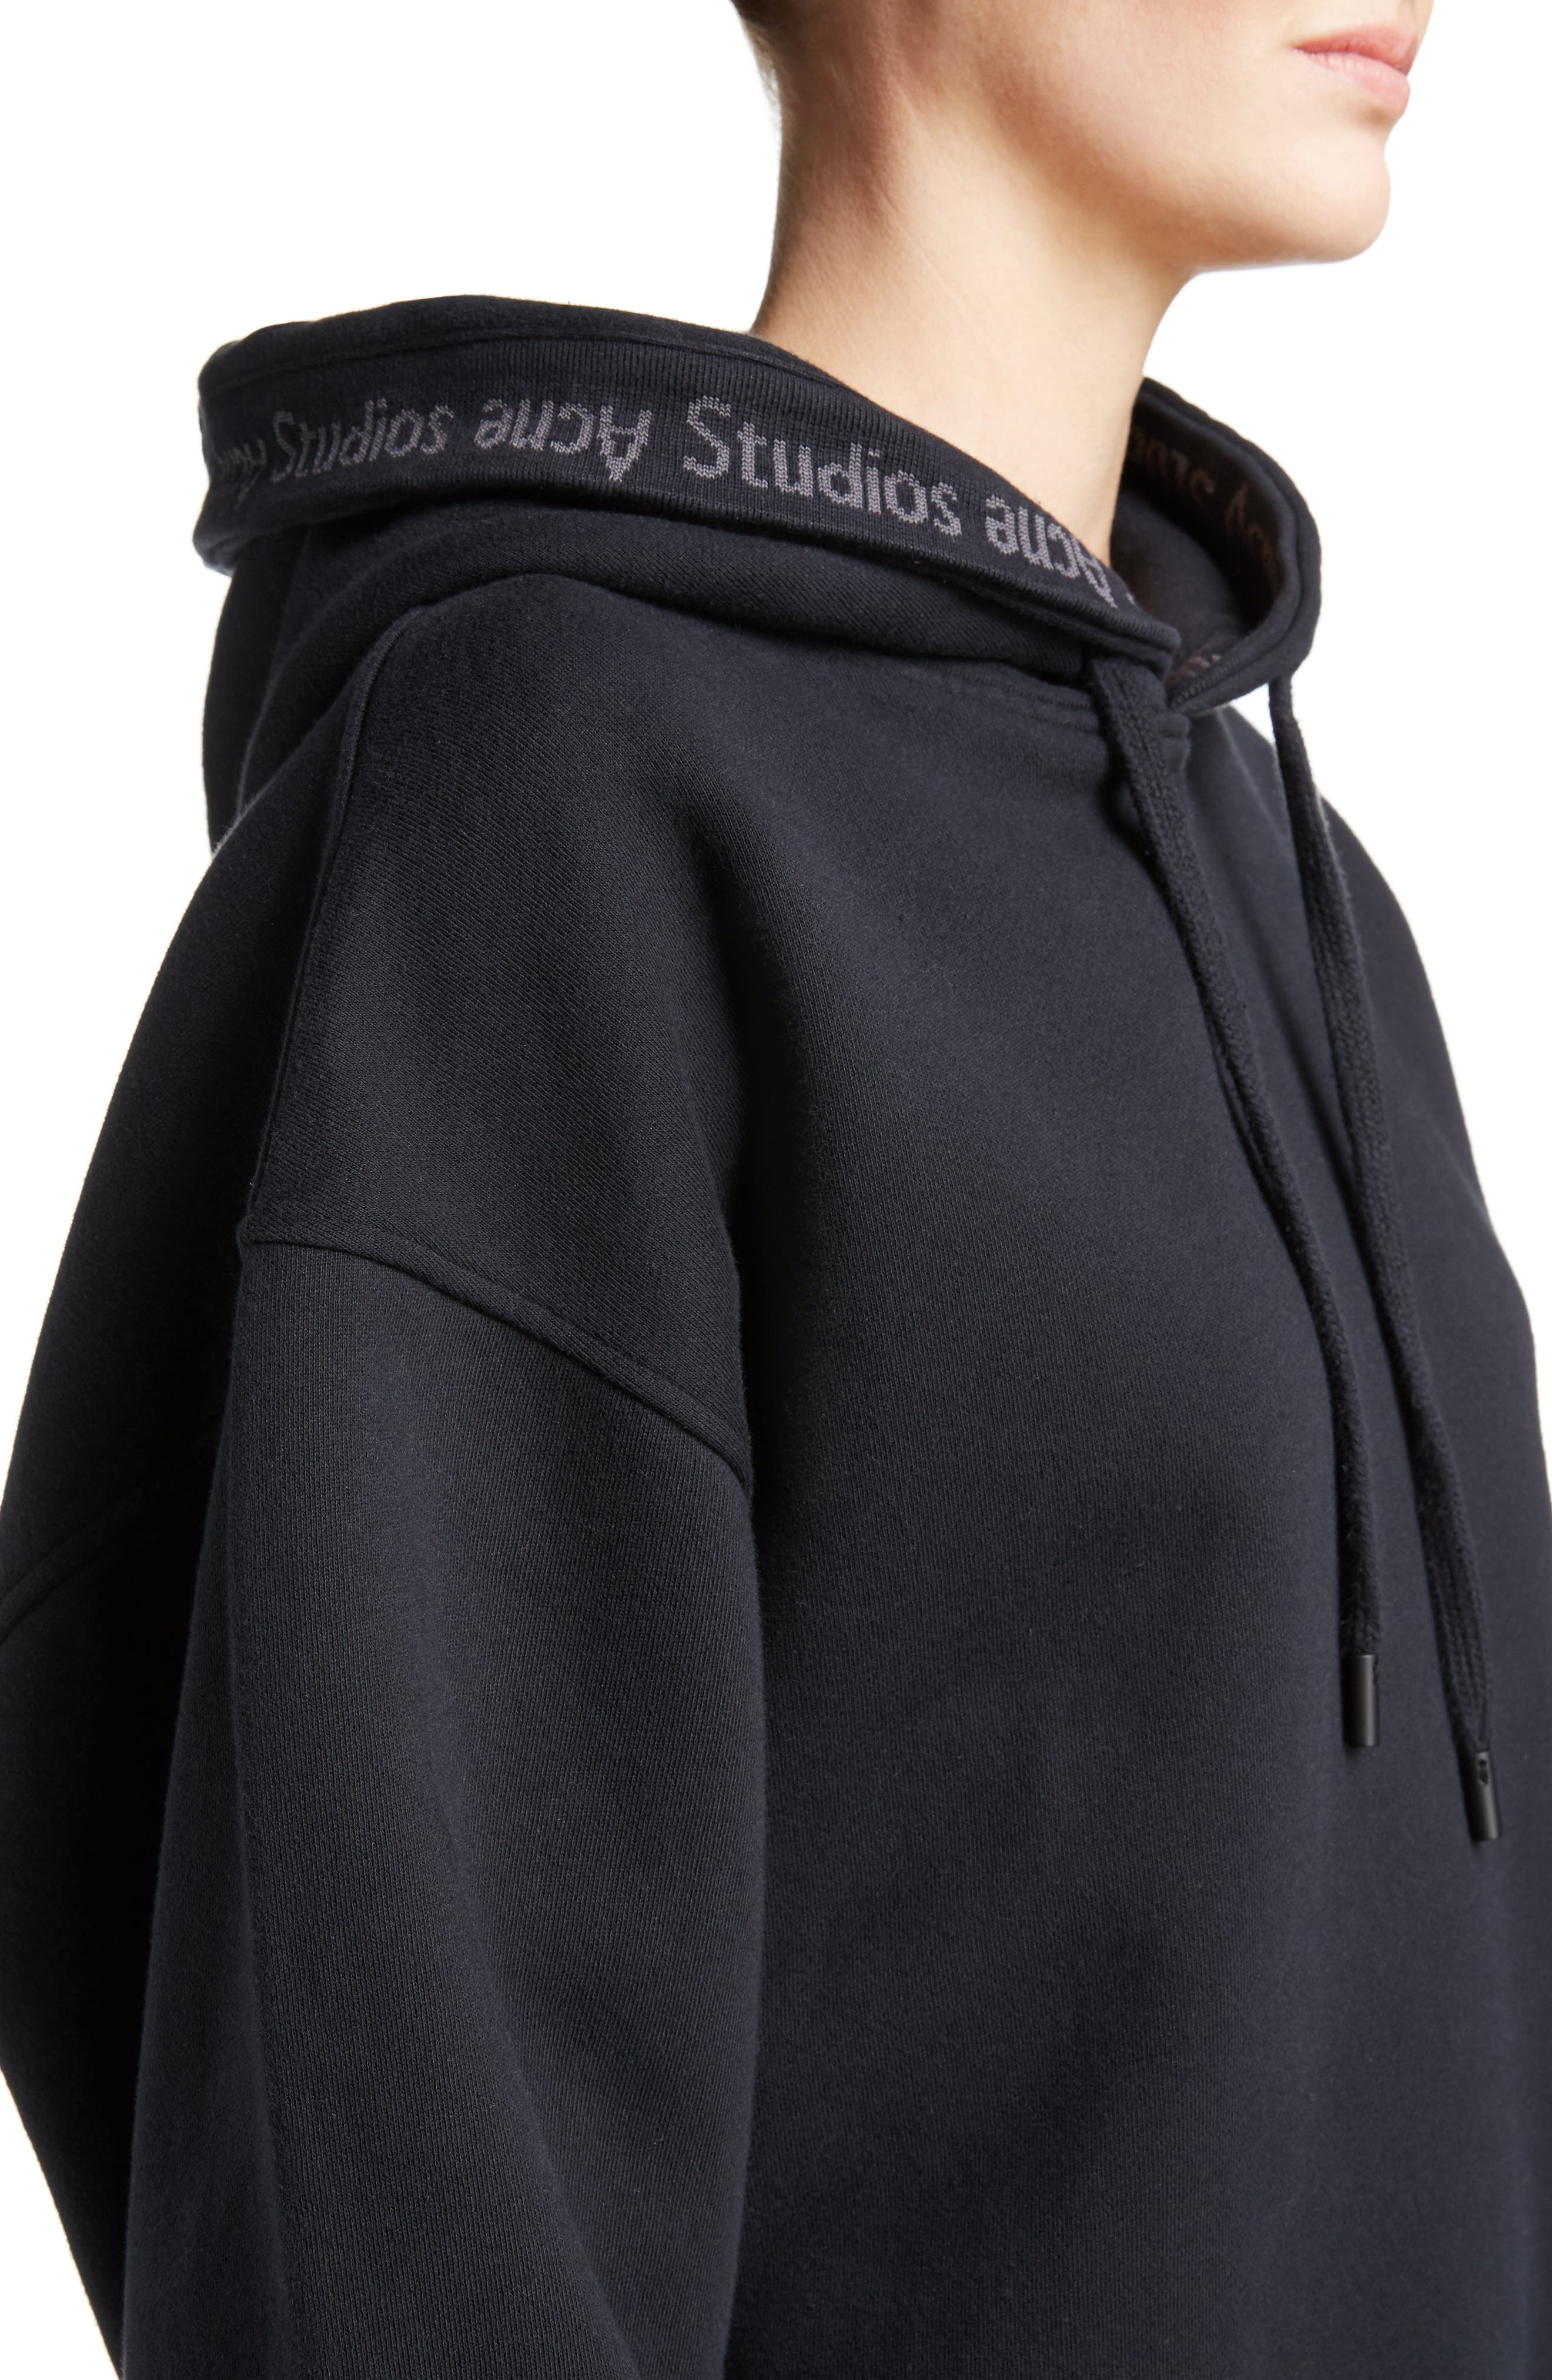 ACNE STUDIOS,                             Yala Oversize Hoodie,                             Alternate thumbnail 4, color,                             001